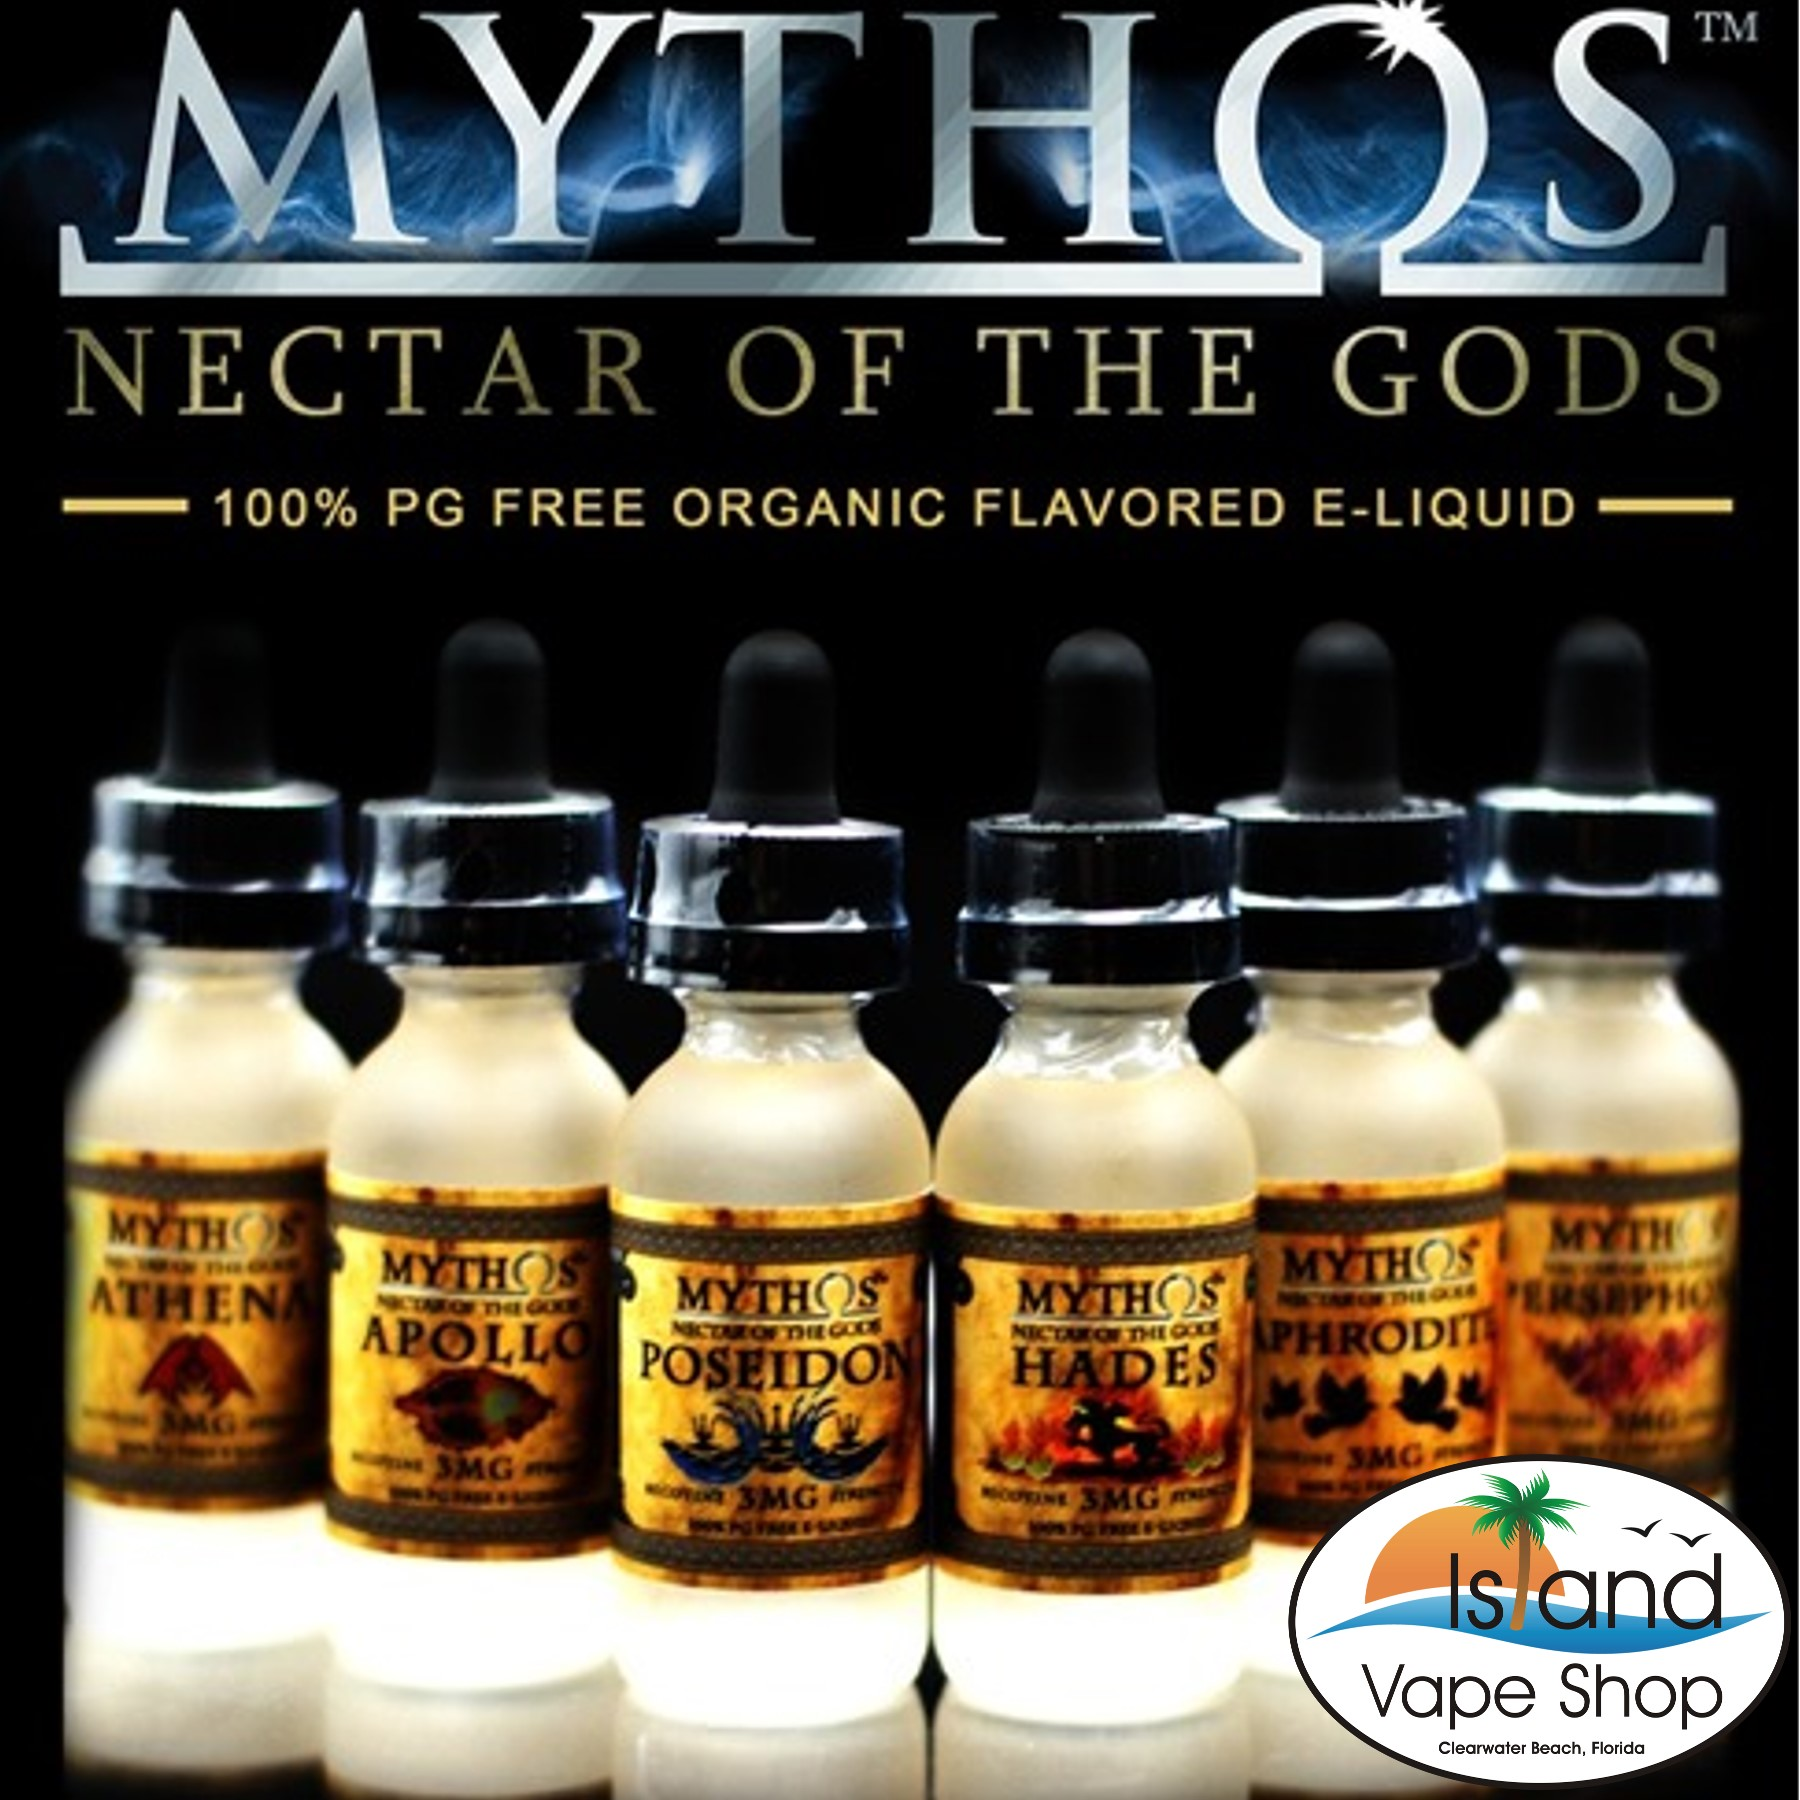 island_vape_shop_clearwater_beach_ecig_eliquid_mythos_nector_of_the_gods_organic_flavored_vapor_juice.jpg